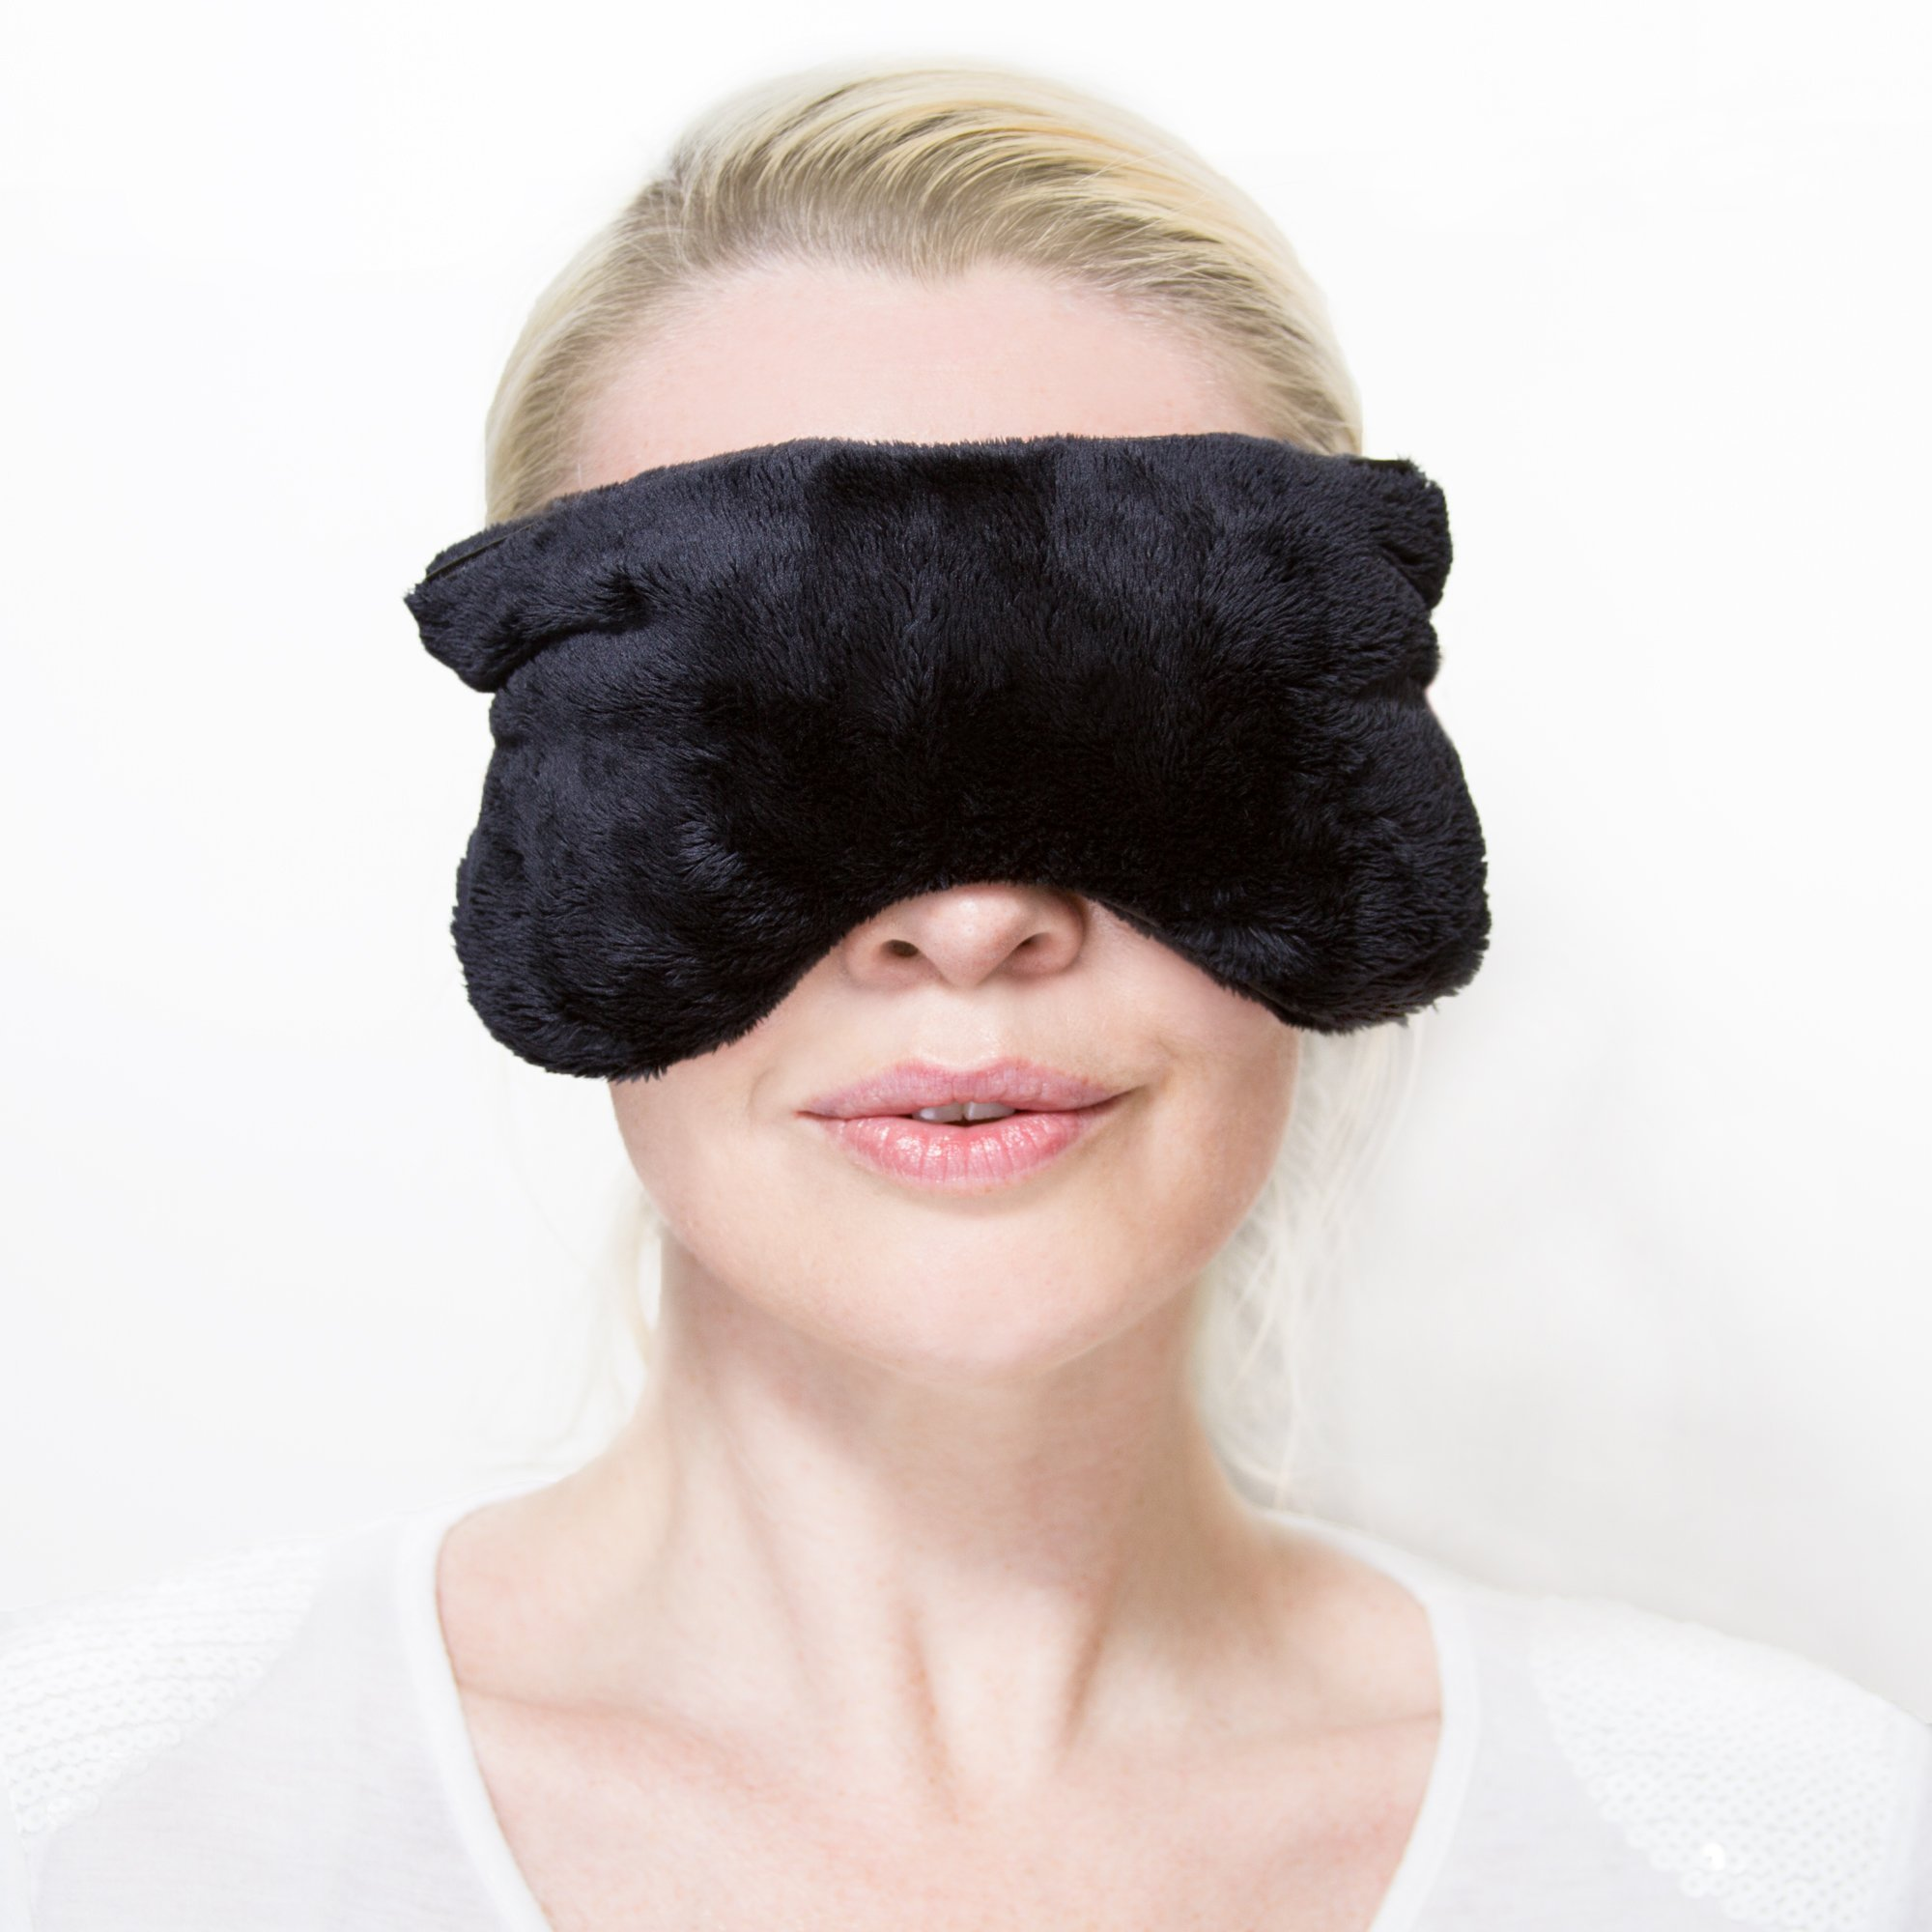 Aromatherapy Eye Pillow Mask Microwavable Heated: Perfect for Yoga and Relax, Helps Relief Headache, Sinus, Migraine, Dry Eyes, and Improves Sleeping Quality, While Using Hot, Warm or Cold – by ZORELL